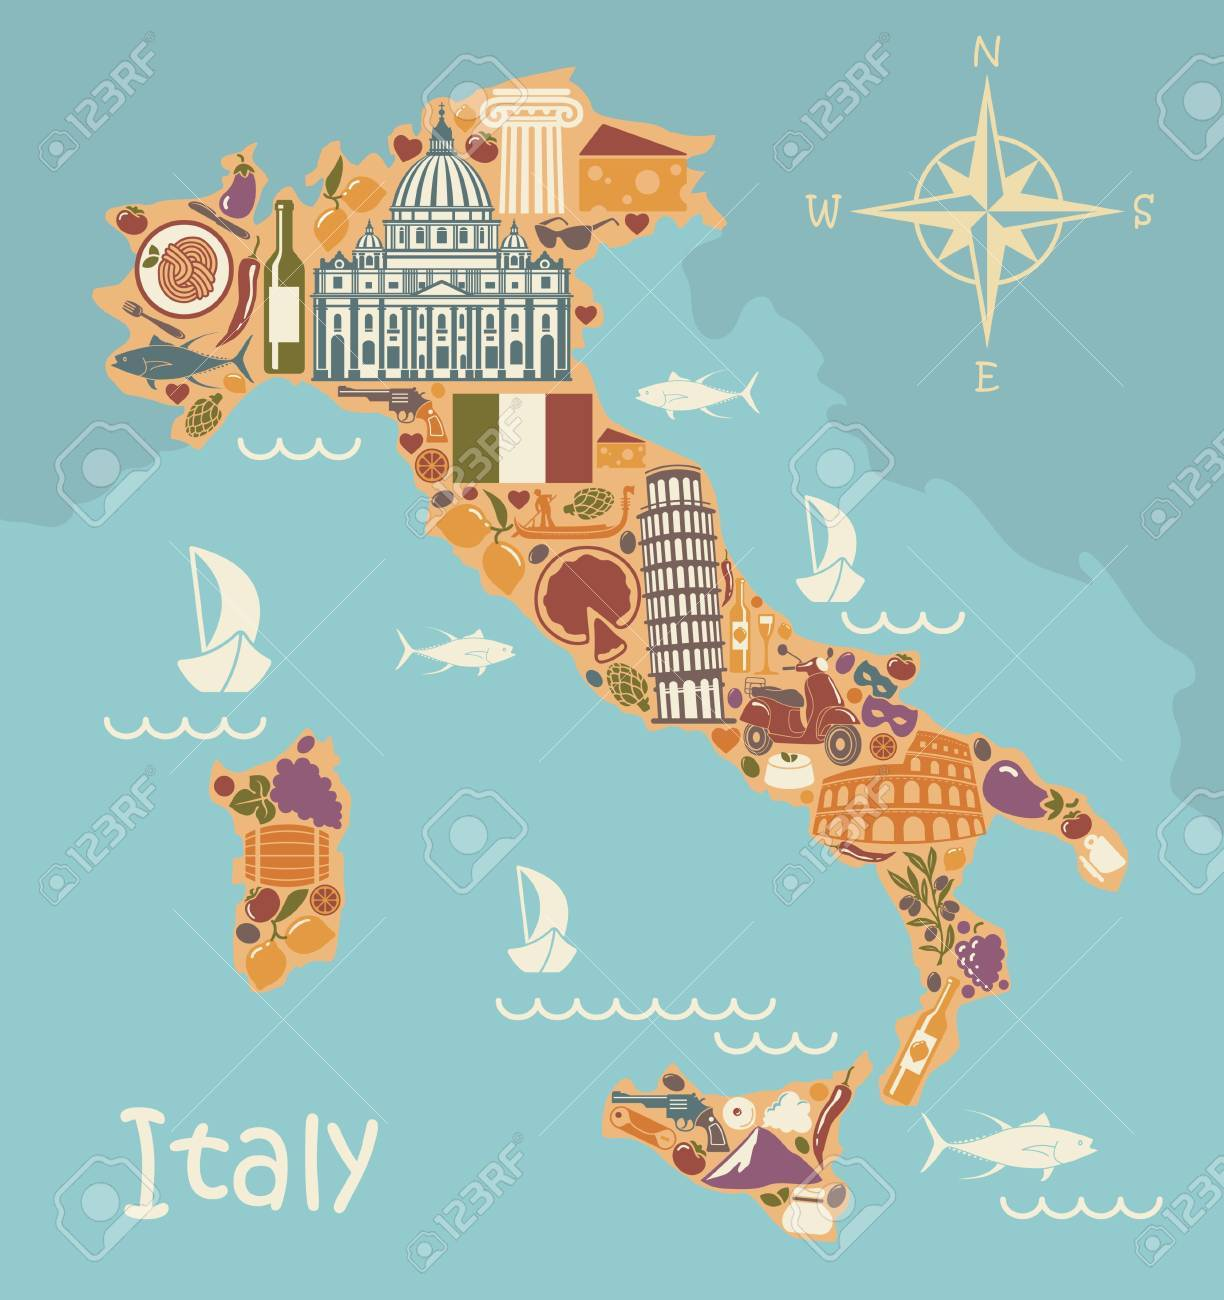 Stylized Map Of Italy With Historical Symbols Of Italian Cuisine